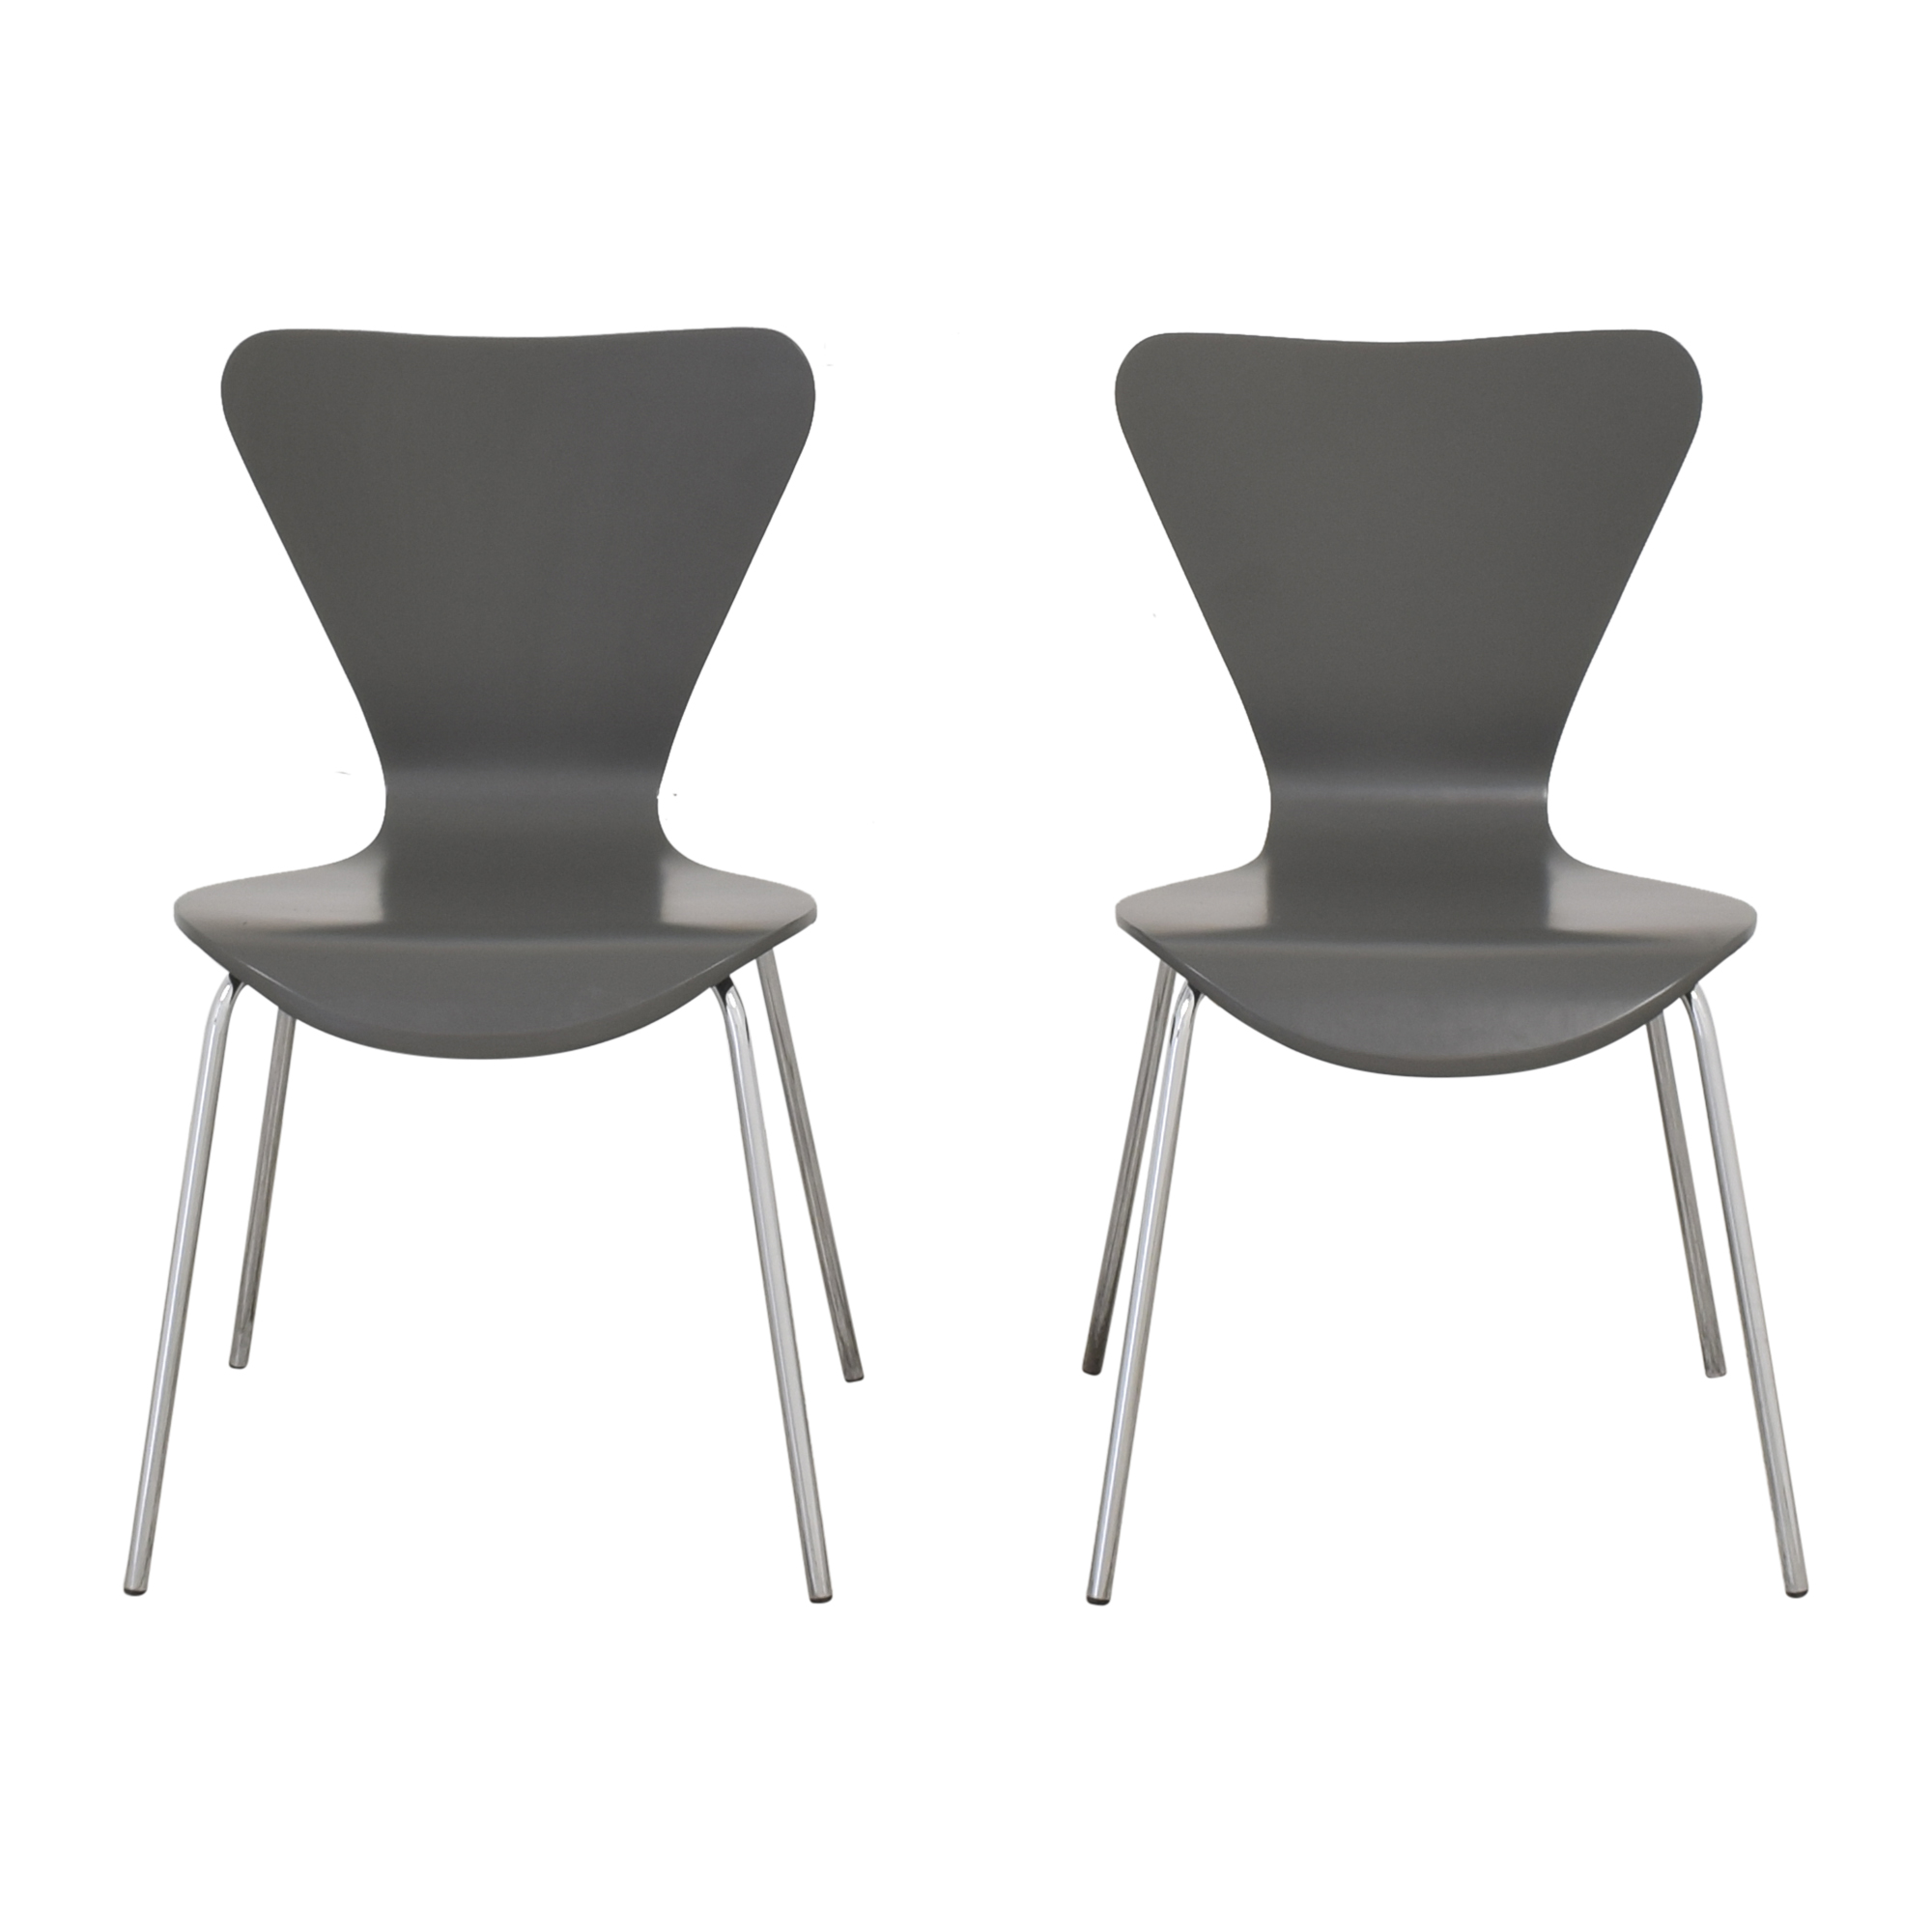 Room & Board Room & Board Modern Pike Chairs on sale